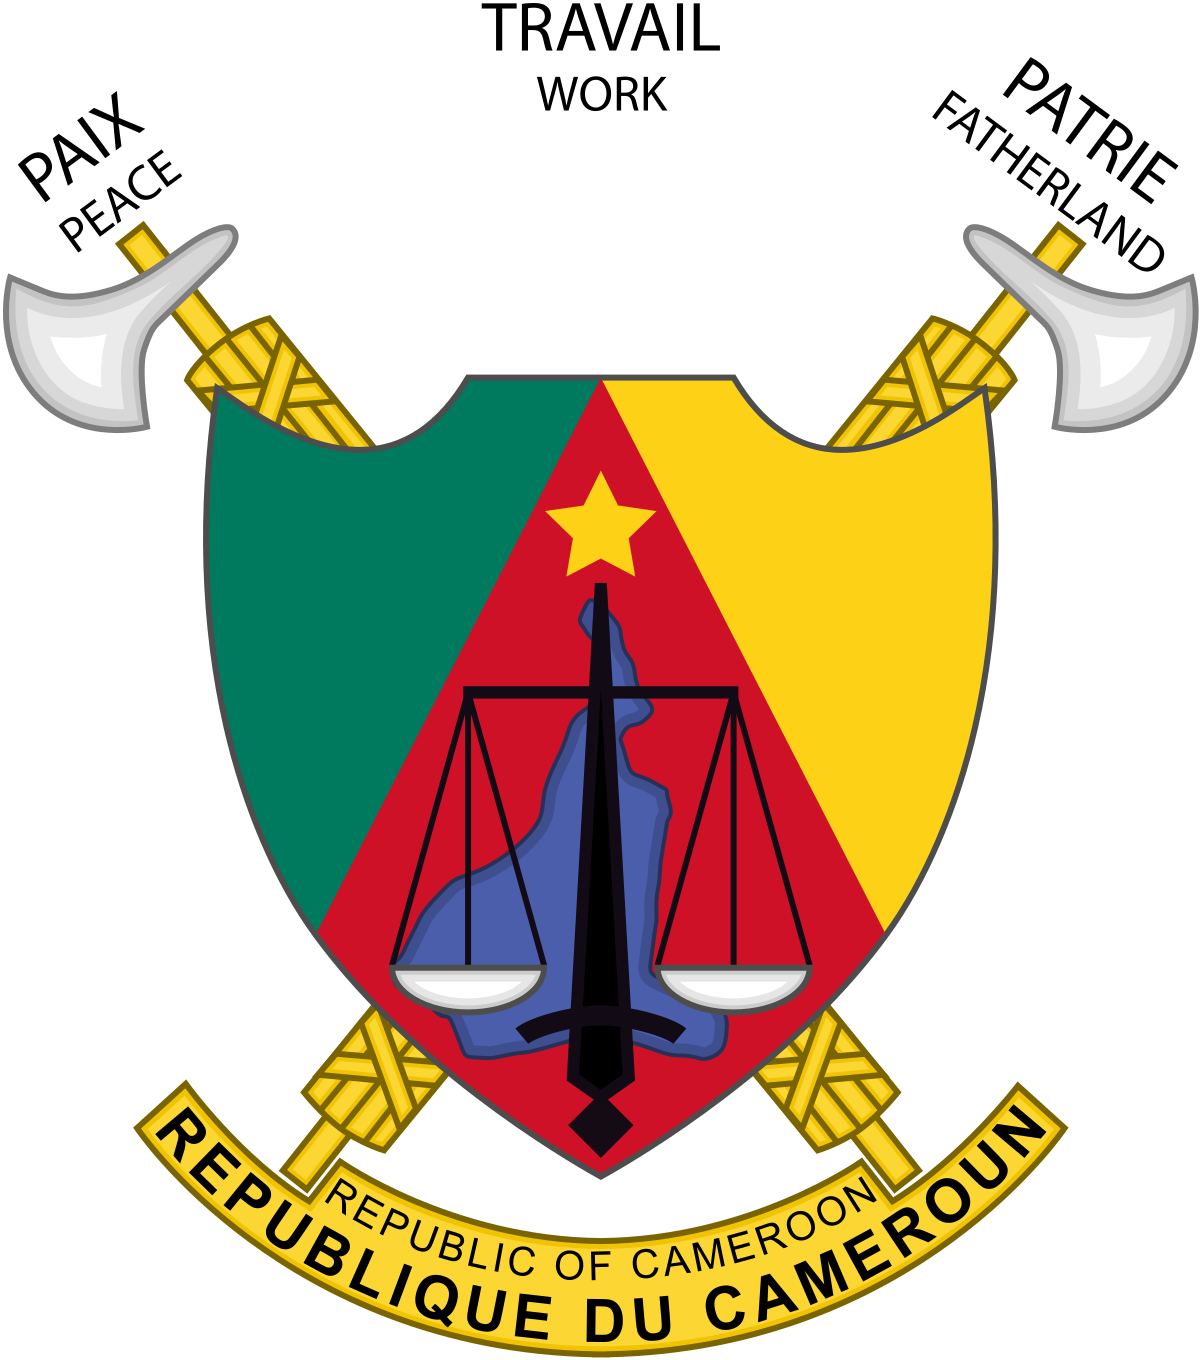 Coat of arms senegal png. Cameroon wikipedia